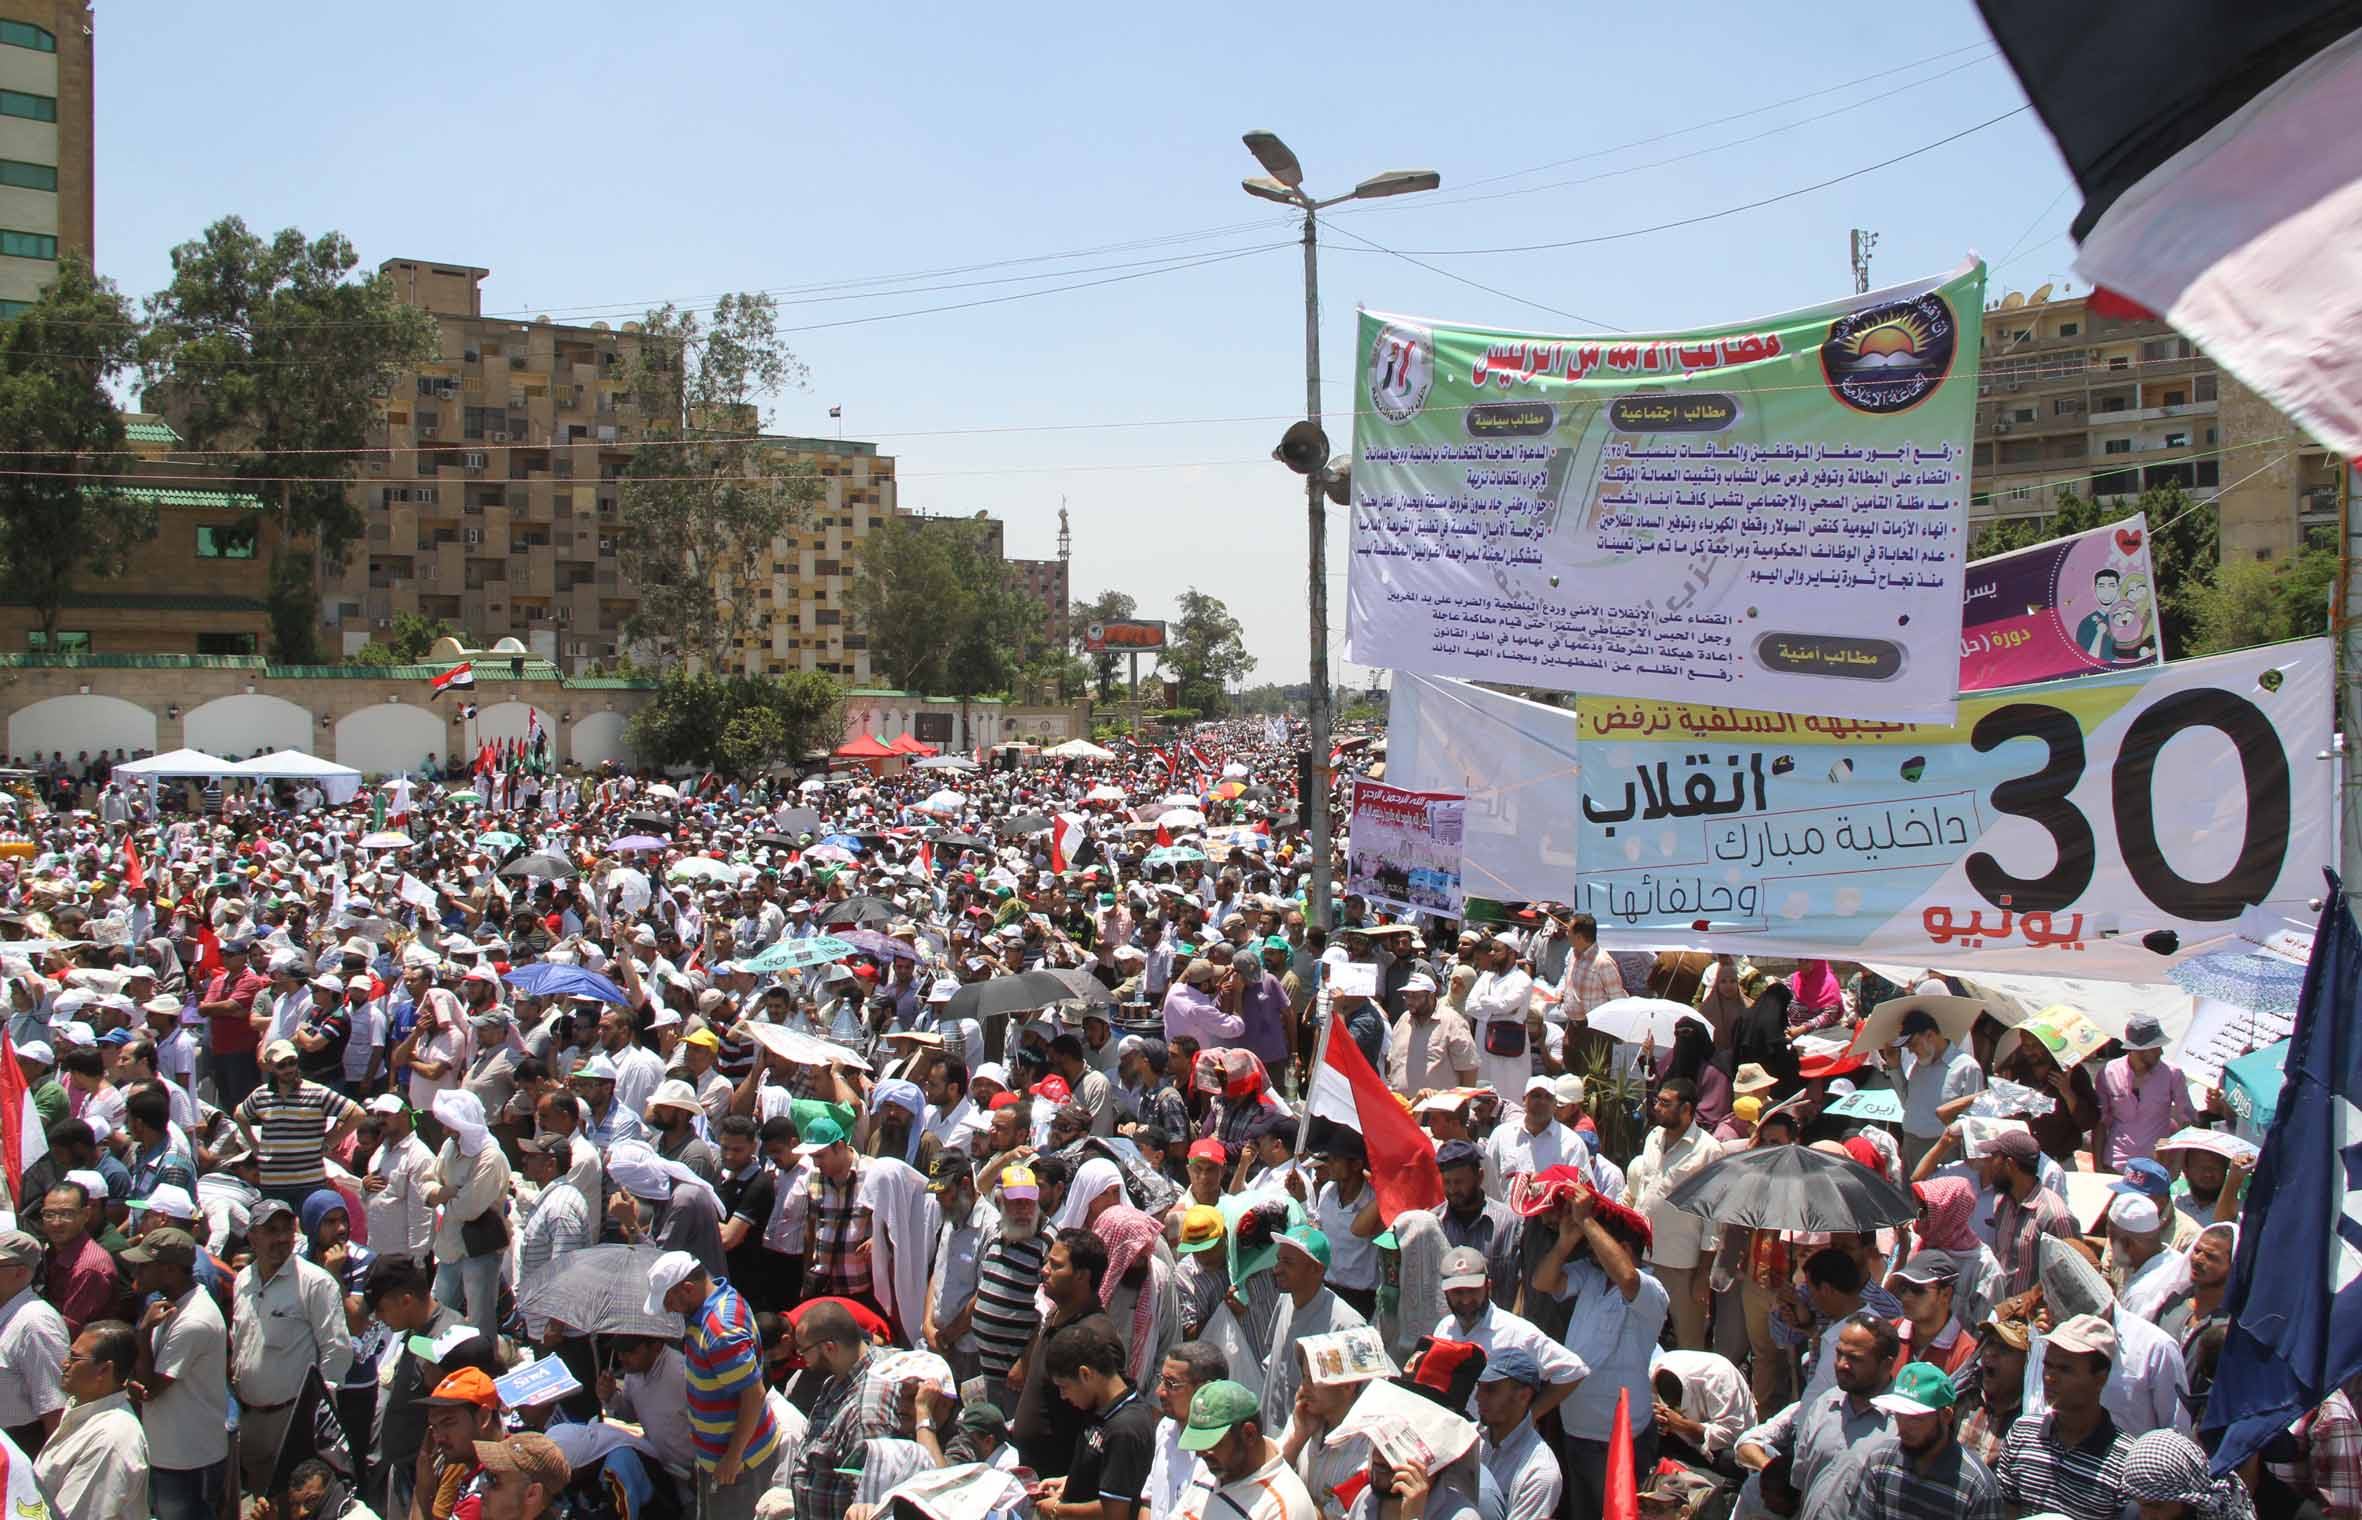 Protests infront of Abdeen Courthouse on 30 November (DNE Photo)